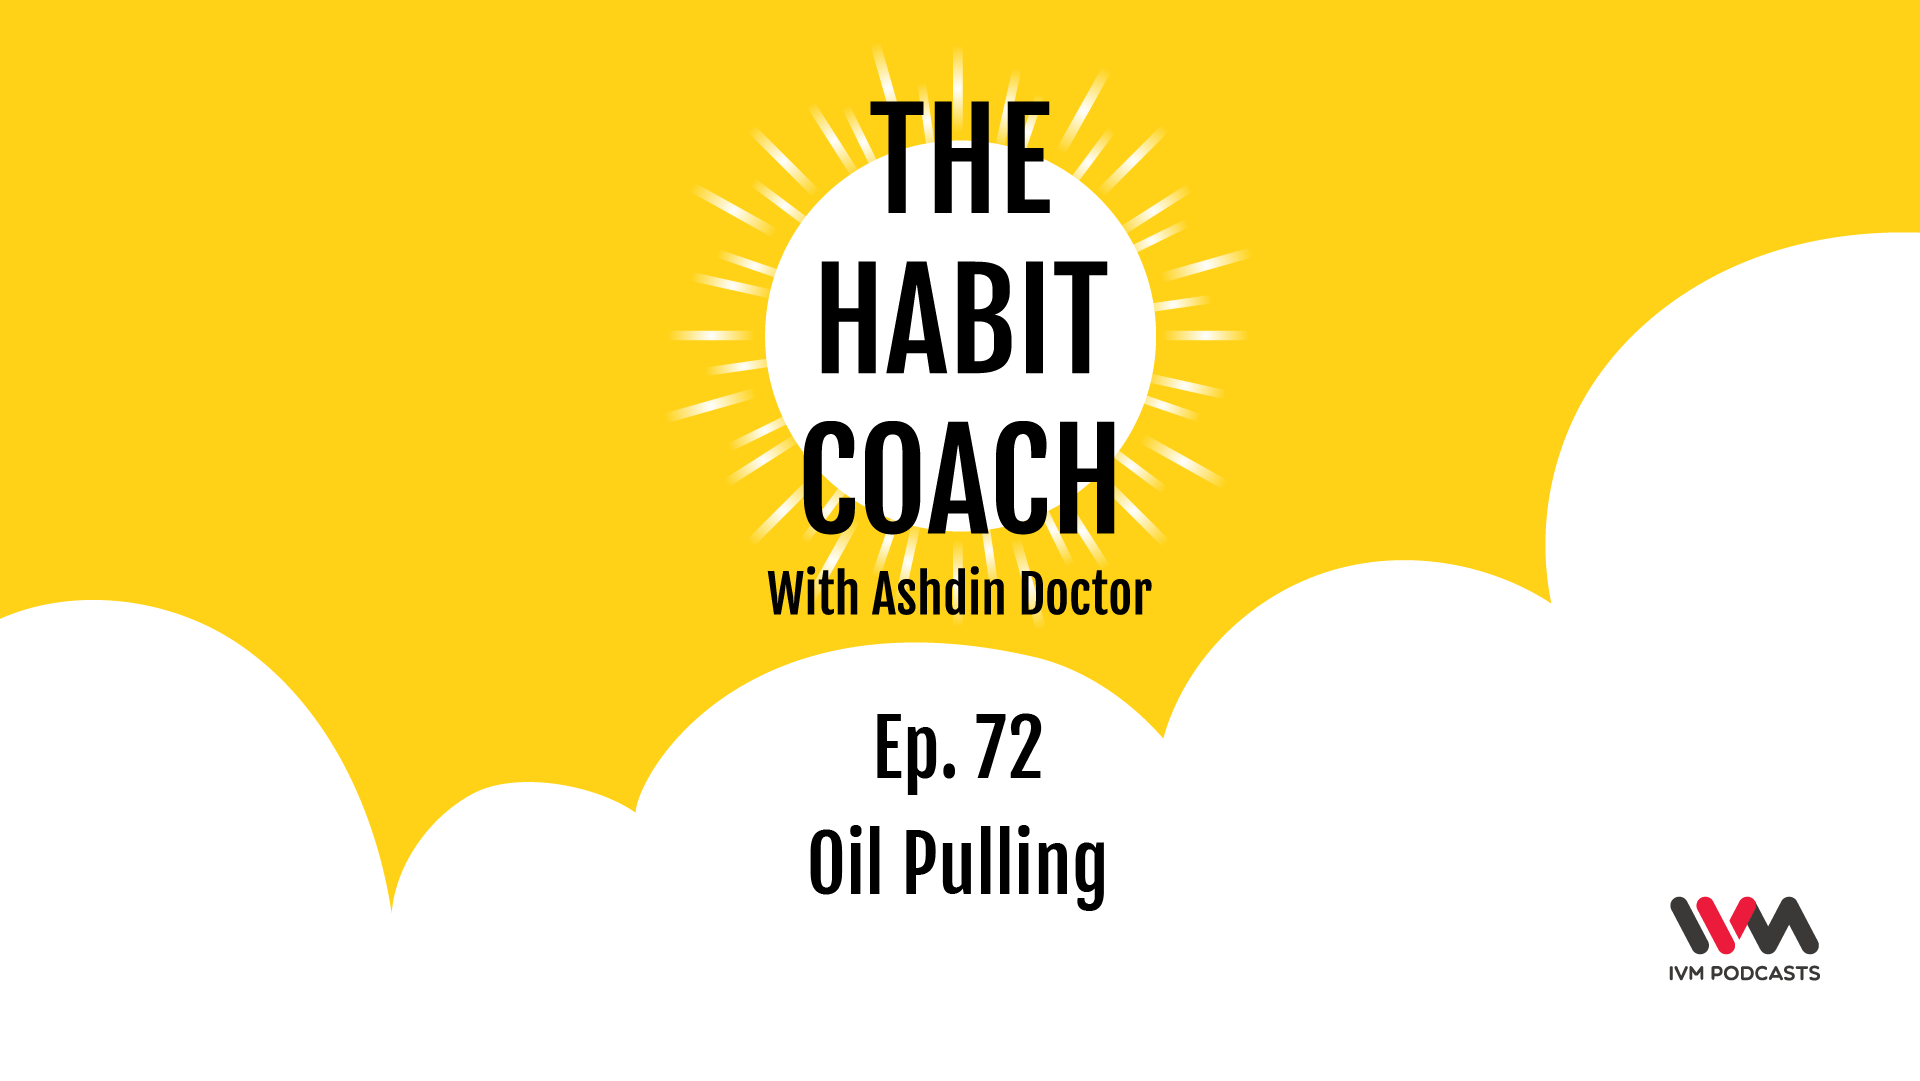 TheHabitCoachEpisode72.png